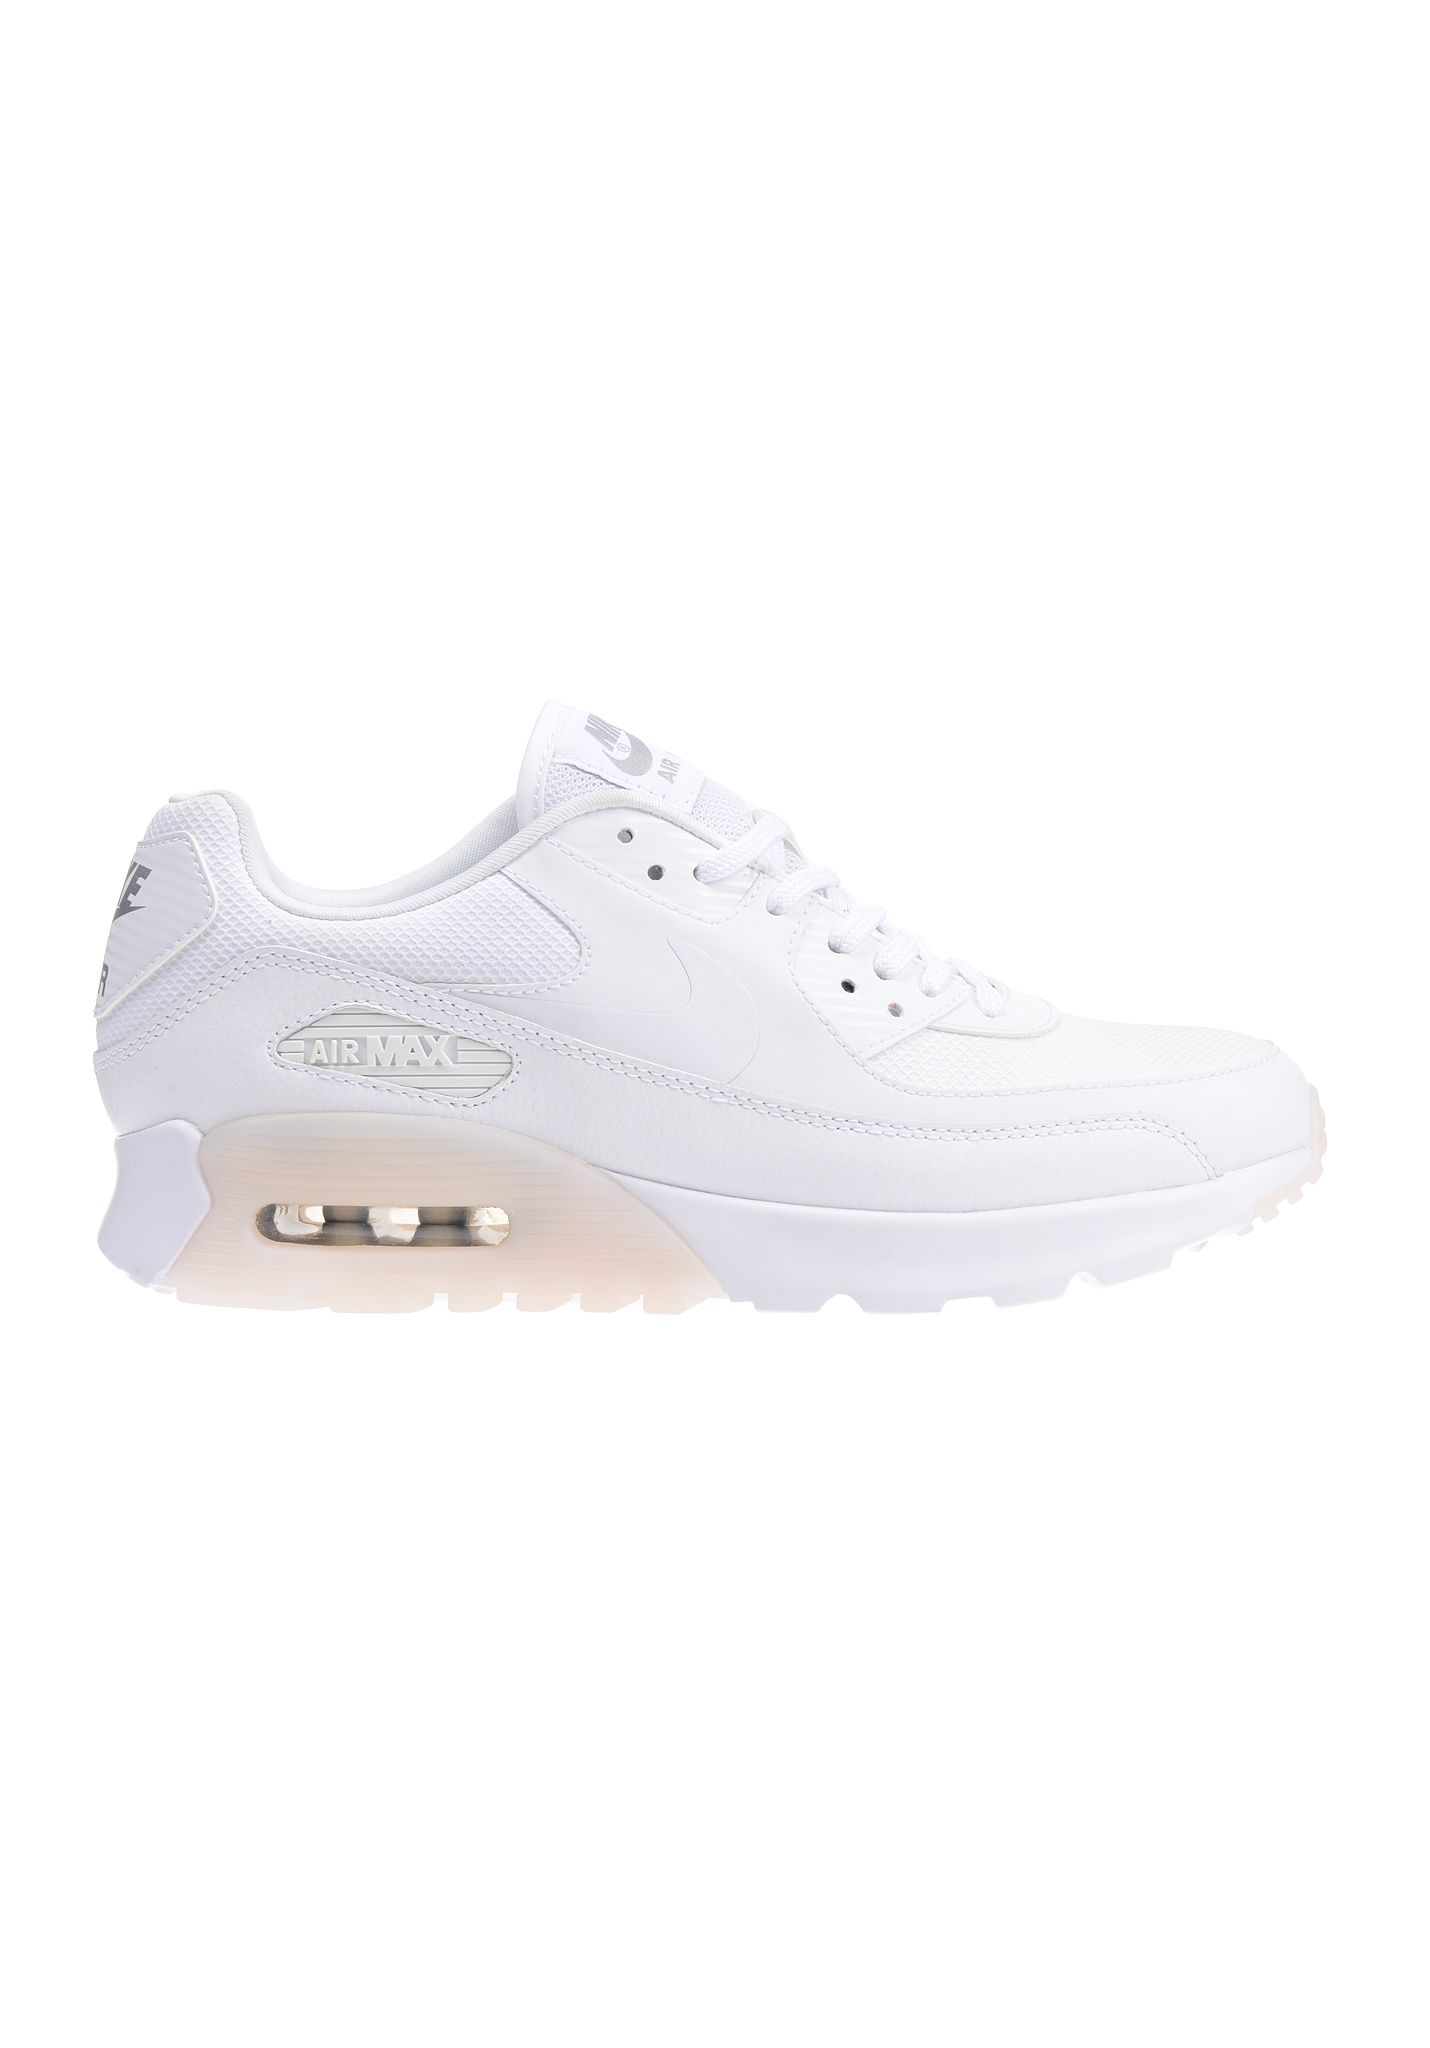 separation shoes d9d27 84609 NIKE SPORTSWEAR Air Max 90 Ultra Essential - Sneakers for Women - White -  Planet Sports